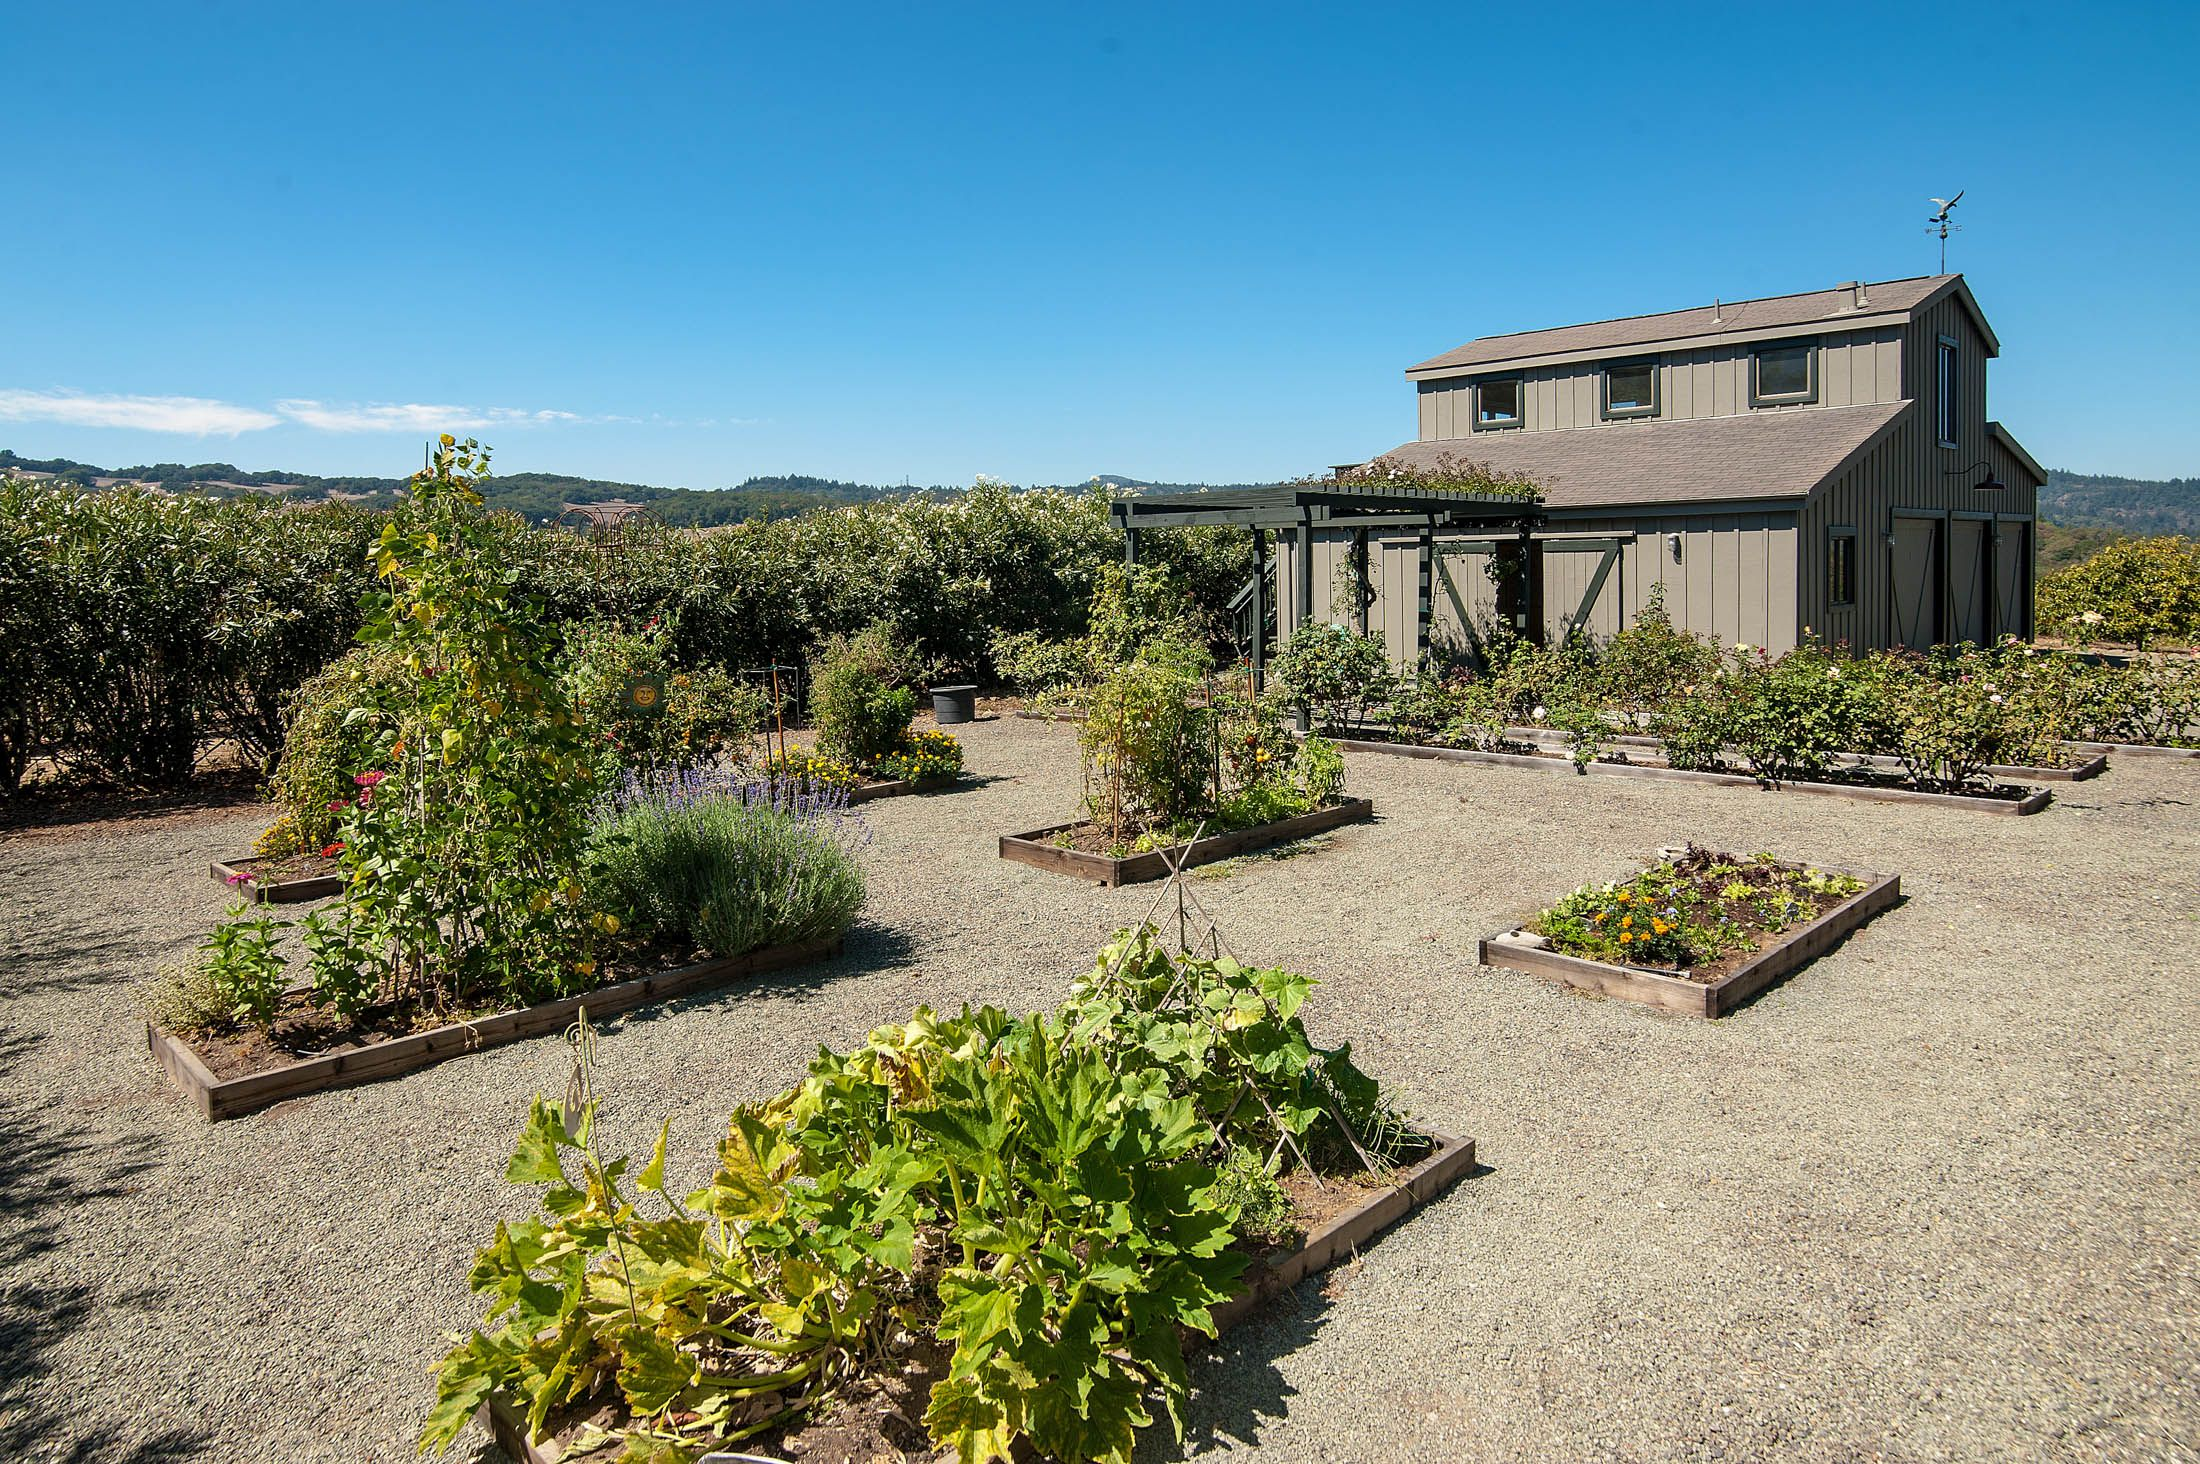 Barn and getable gardens | Garden room, Land for sale ...